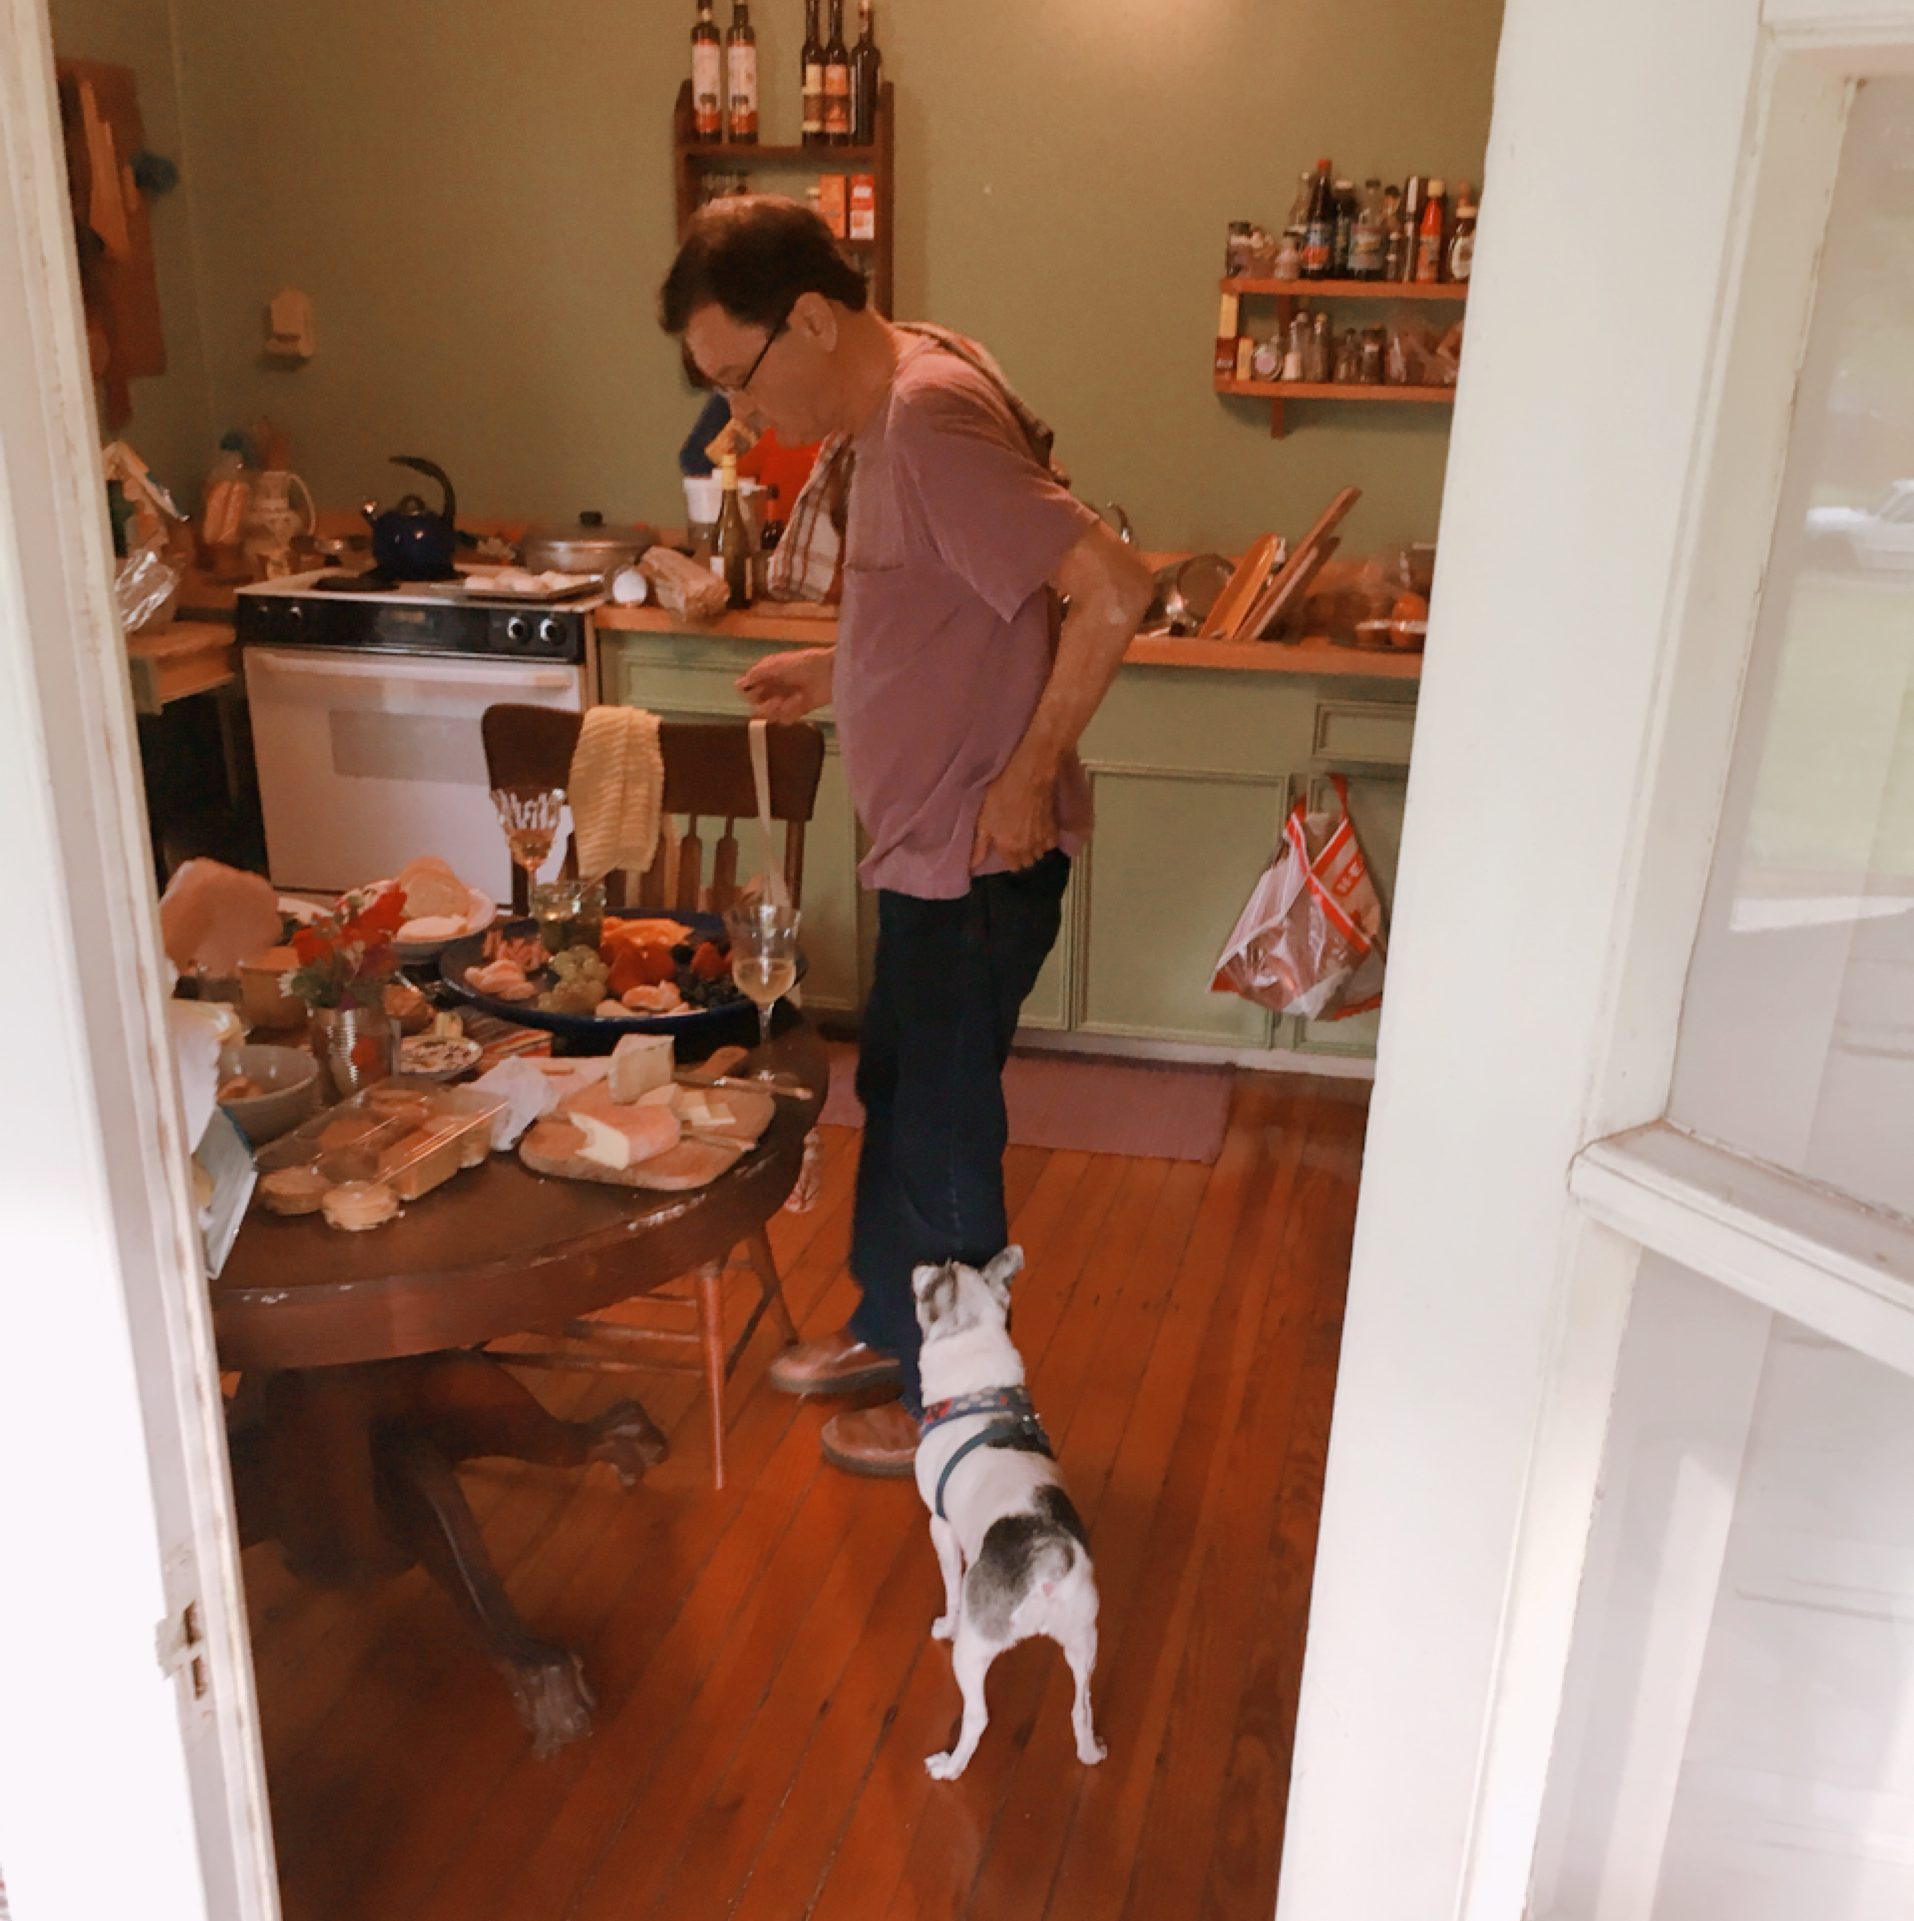 Izzy, Deanna's dog, was pretty sure that Hightower would drop some cheese for her